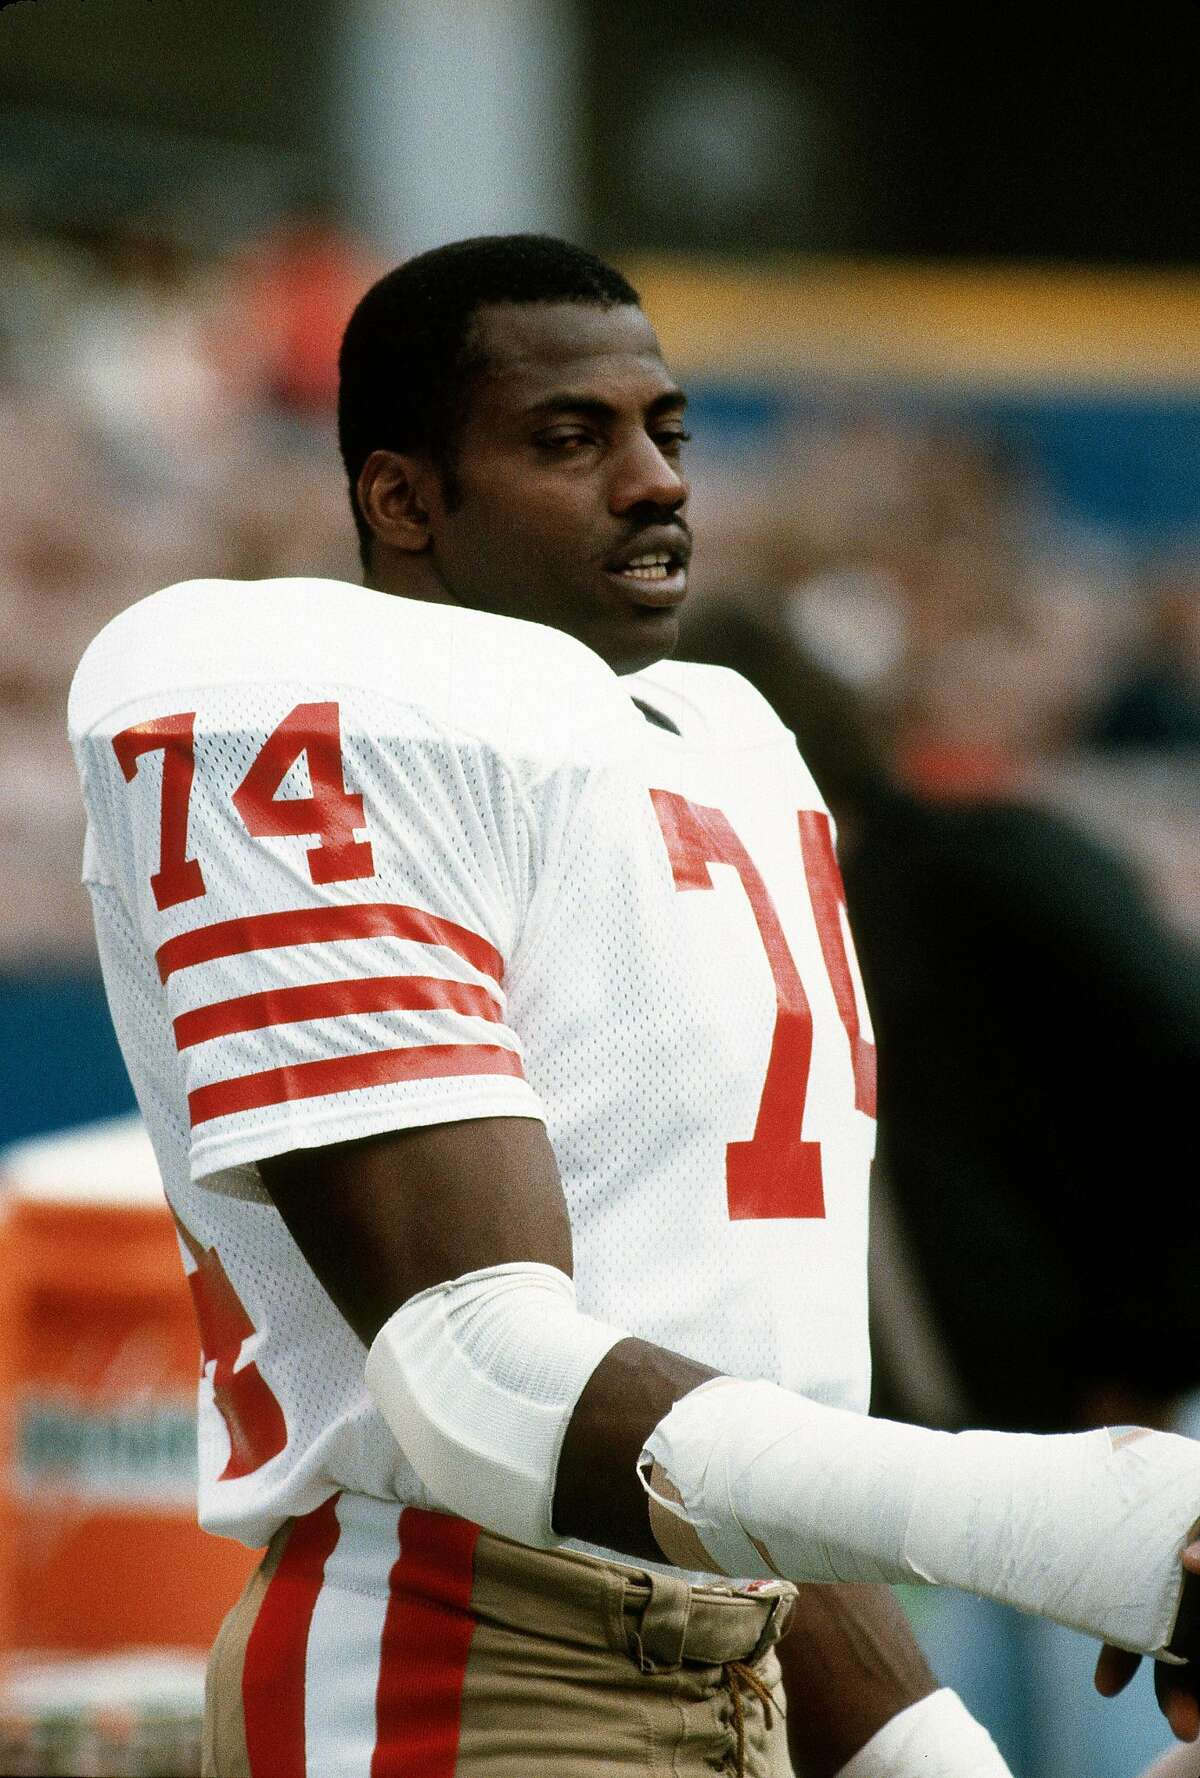 According to a former teammate, former 49er great Fred Dean is hospitalized after being diagnosed with coronavirus.